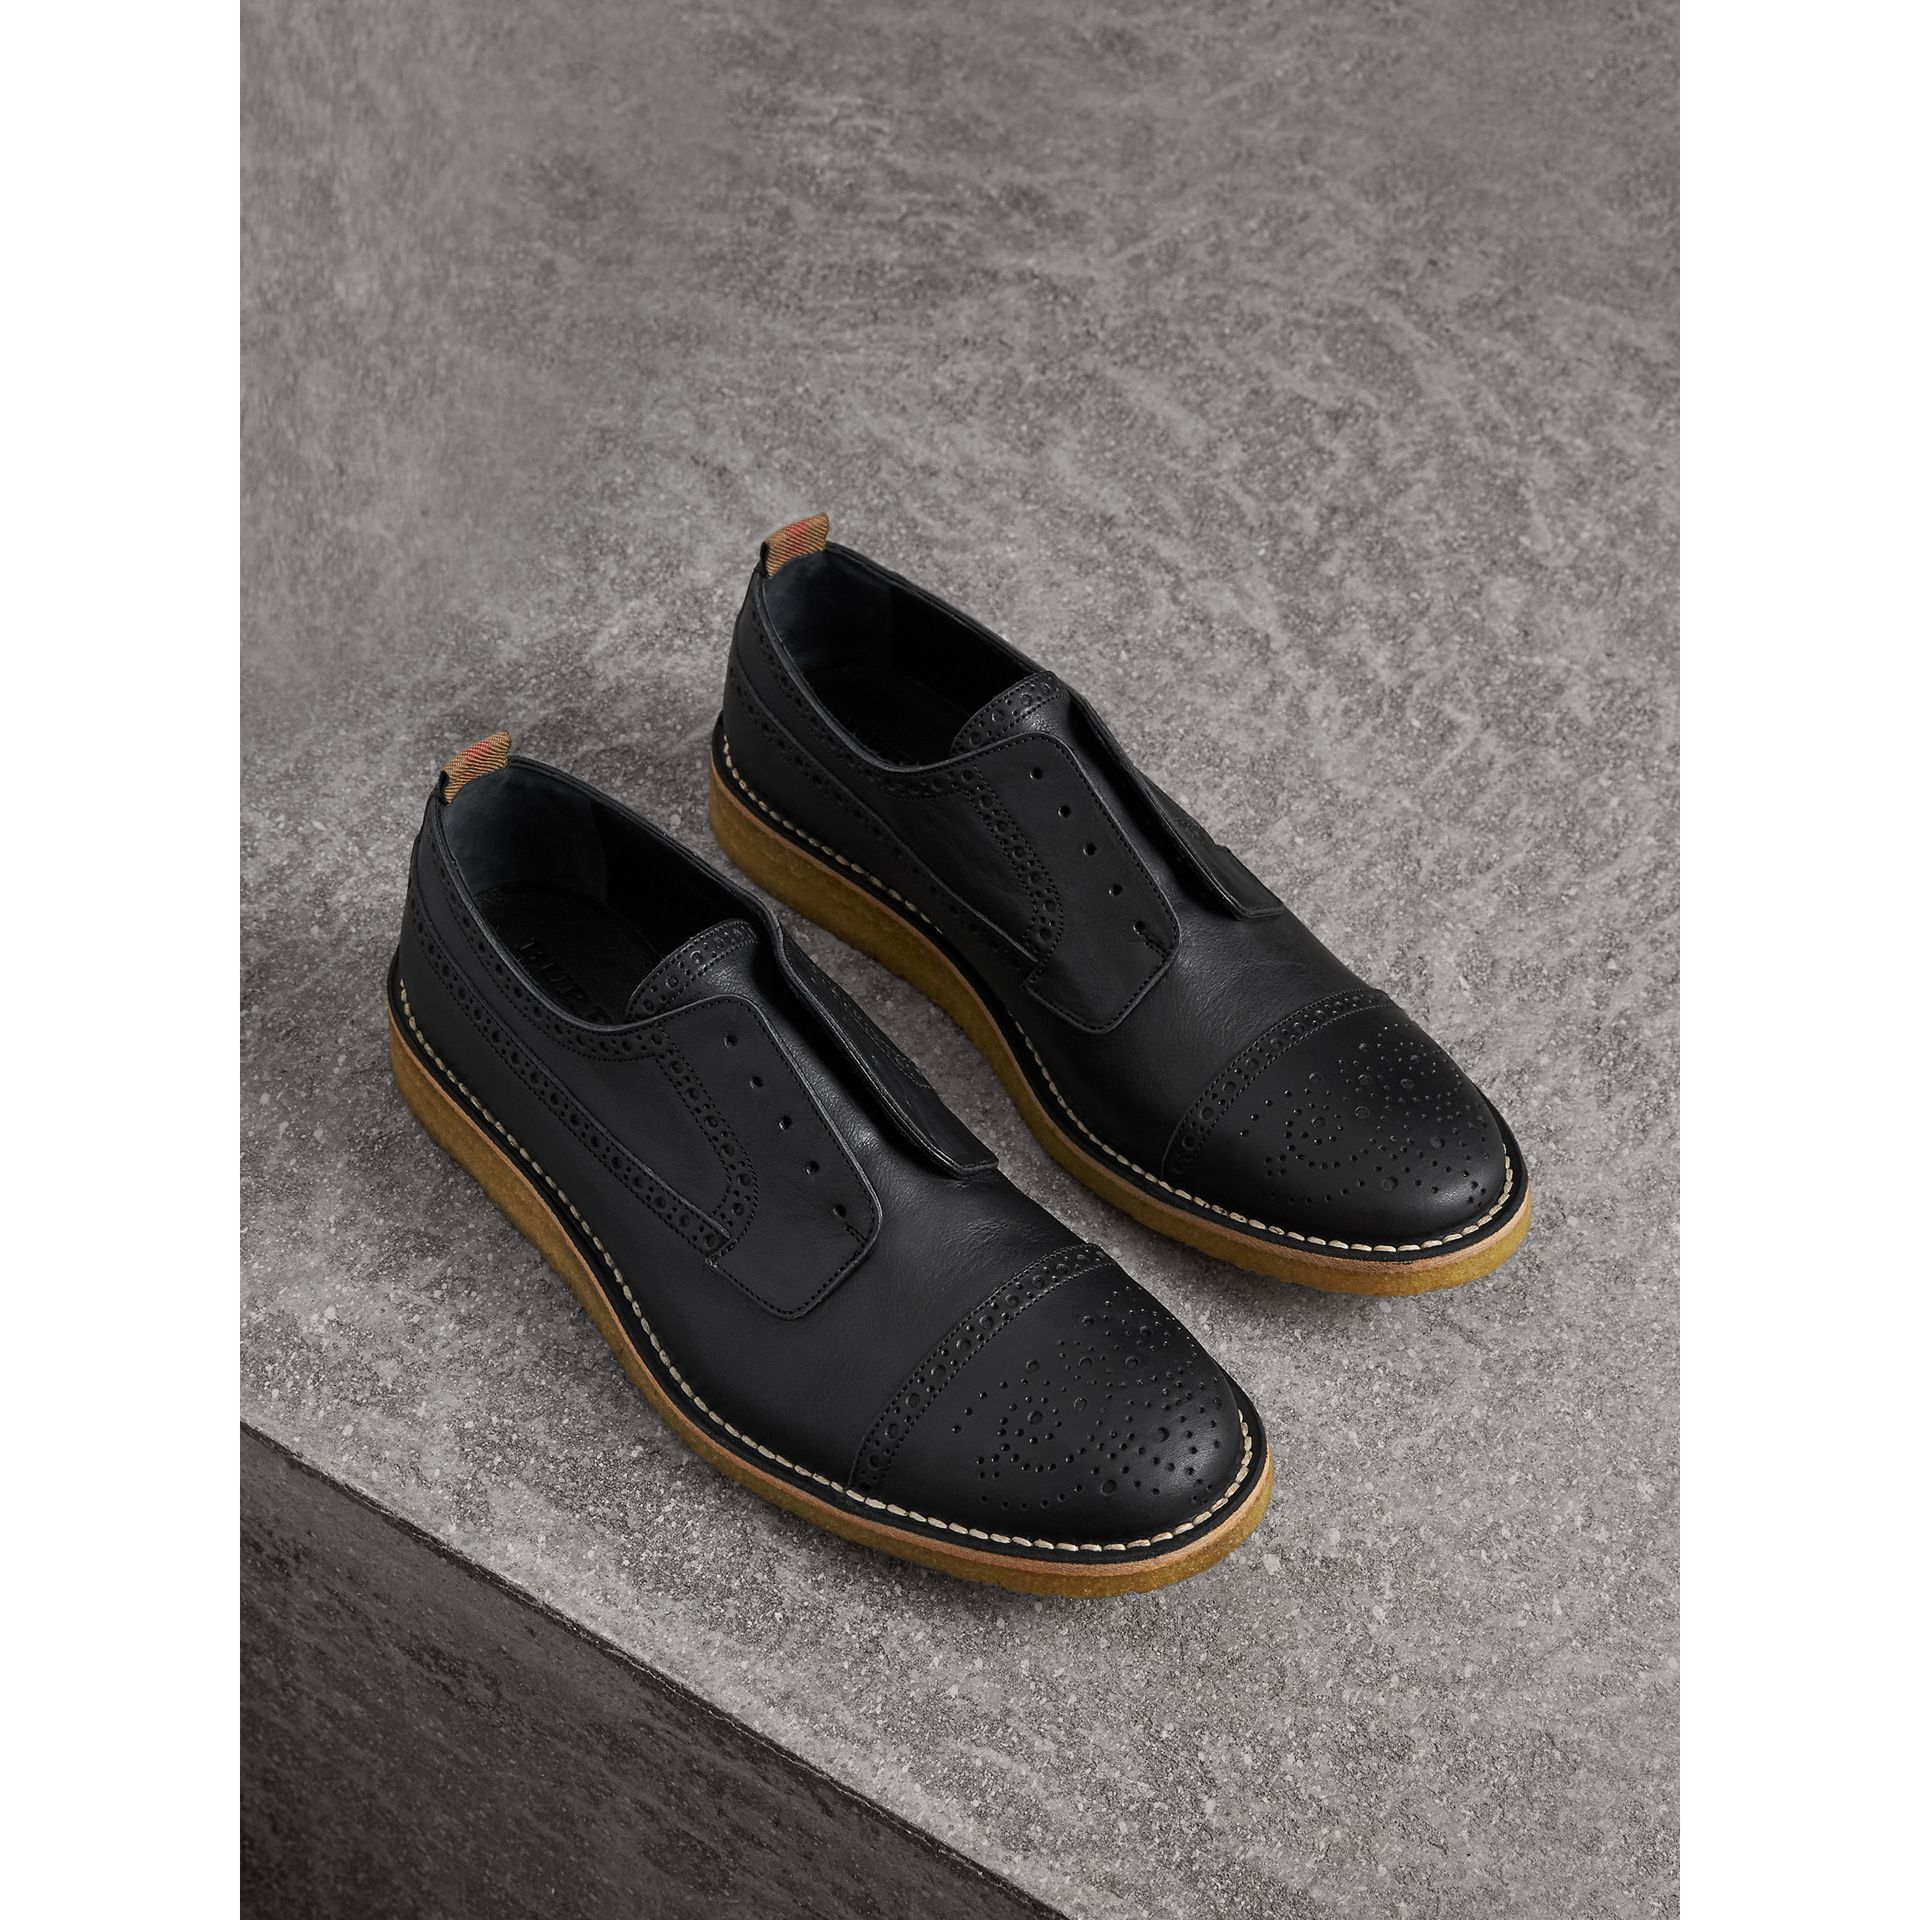 Raised Toe-cap Leather Brogues in Black - Men | Burberry - gallery image 1